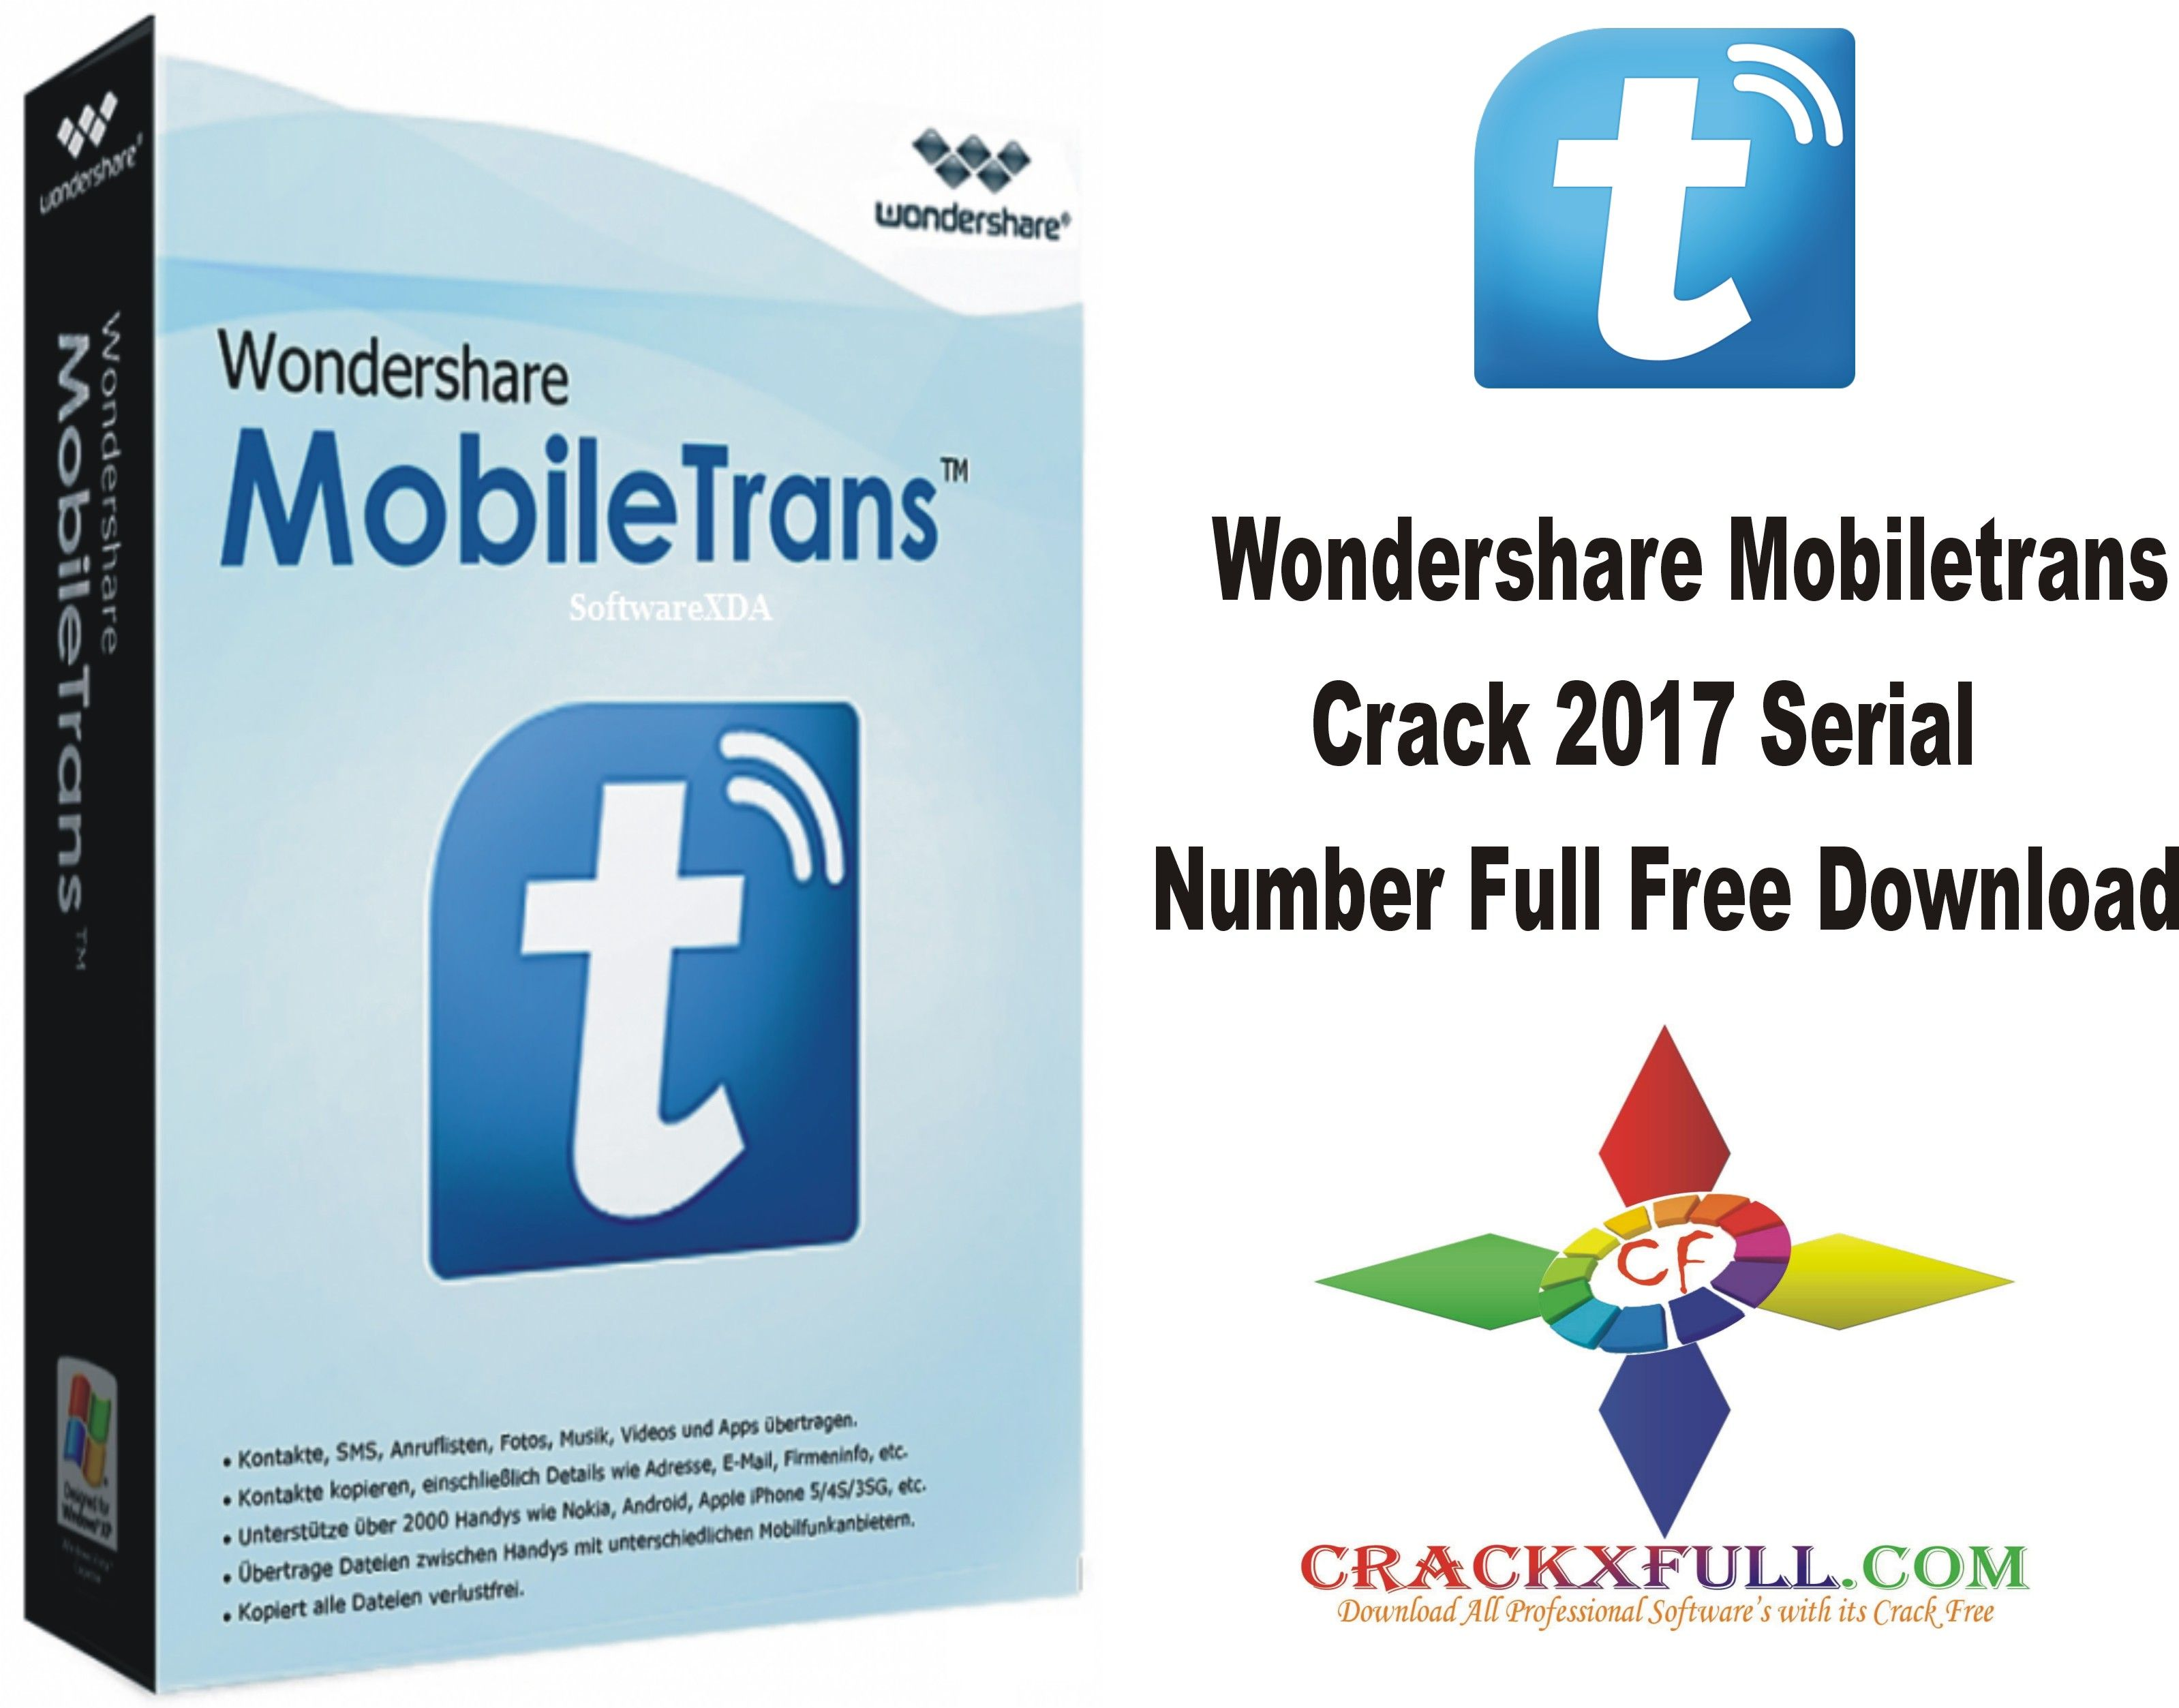 Wondershare Mobiletrans Crack 2017 Serial Number Full Free Download ...